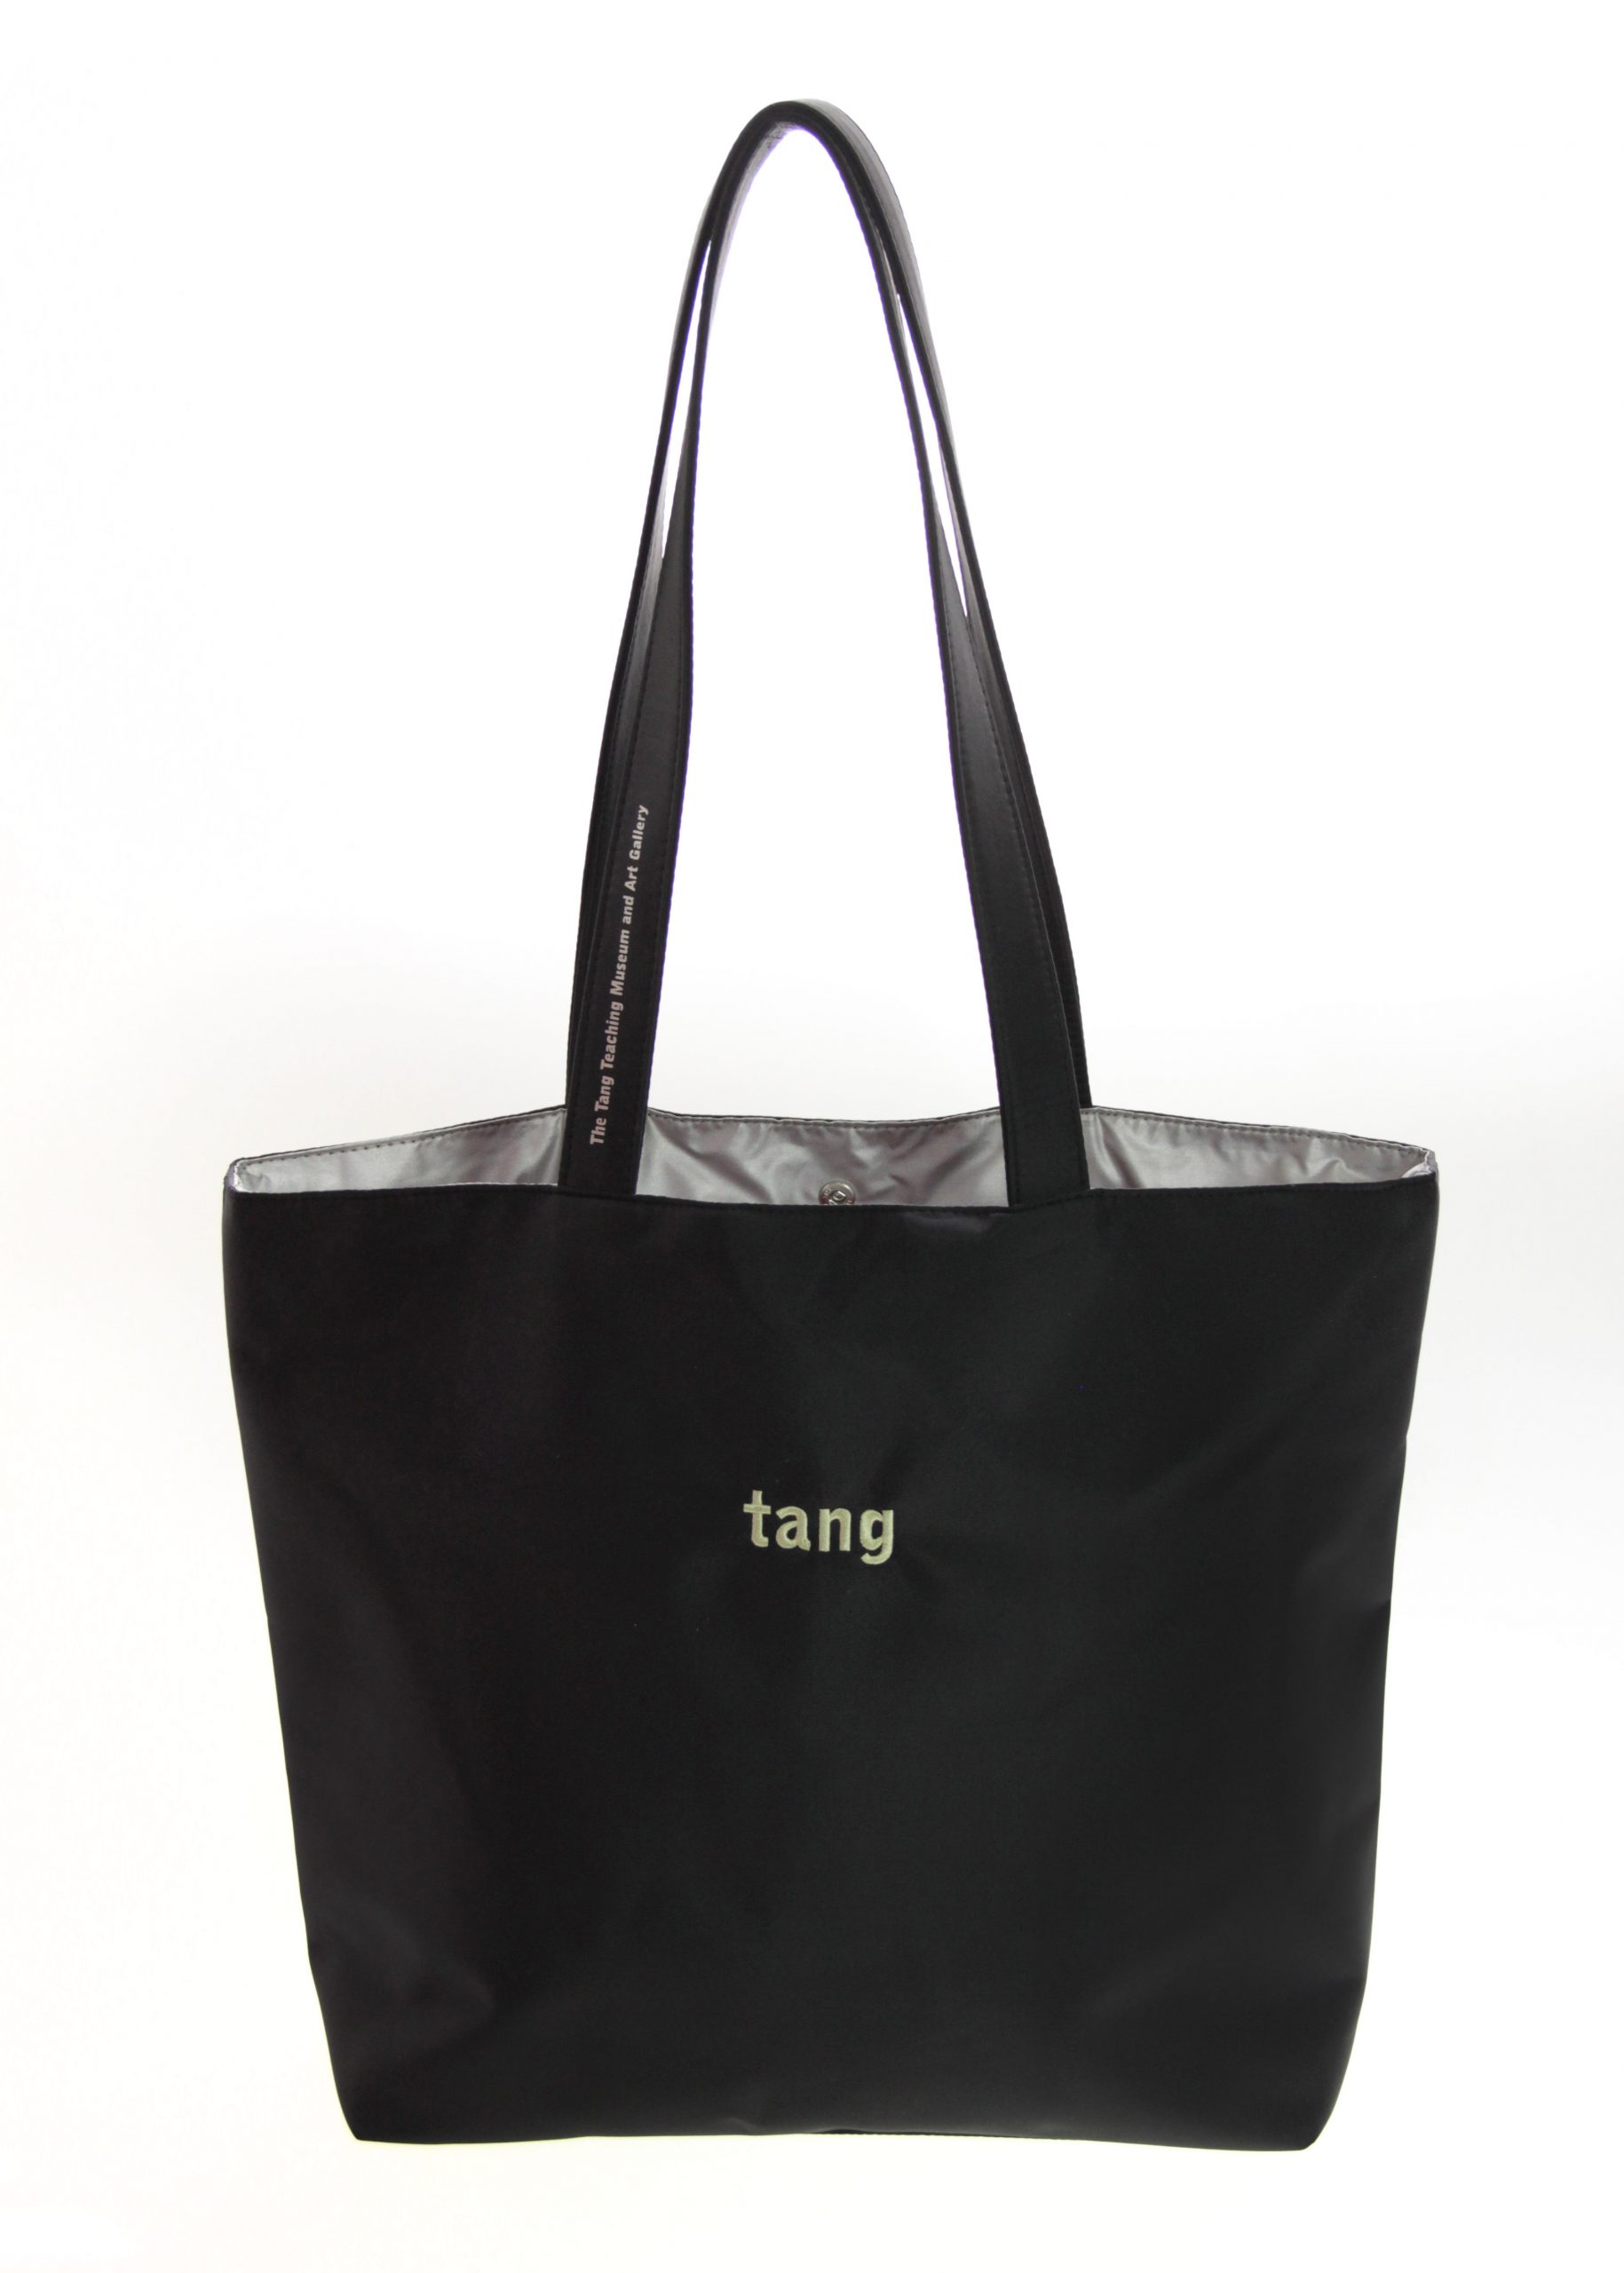 Embroidered Logo Totes